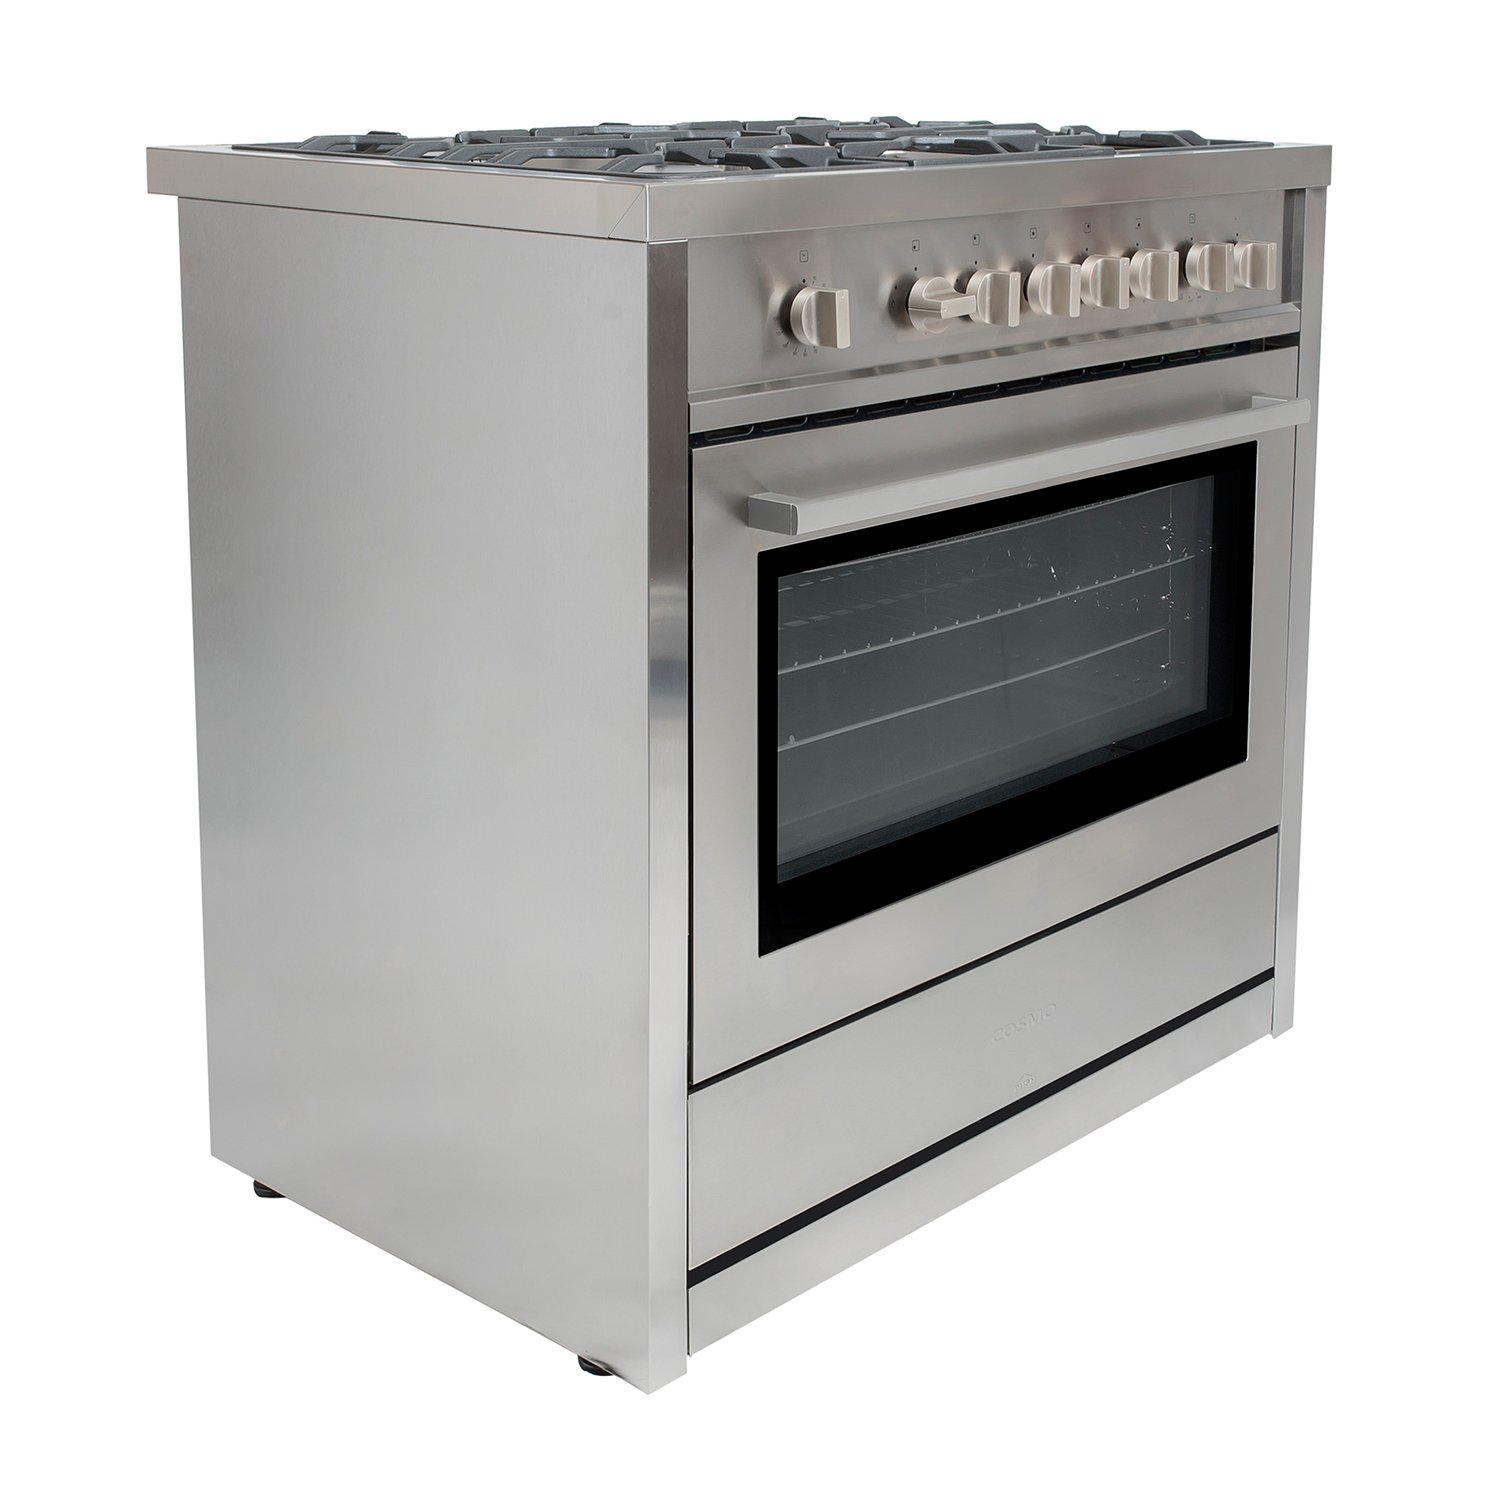 Galleon - 36 In  Gas Range With 5 Italian Made Burners, Oven